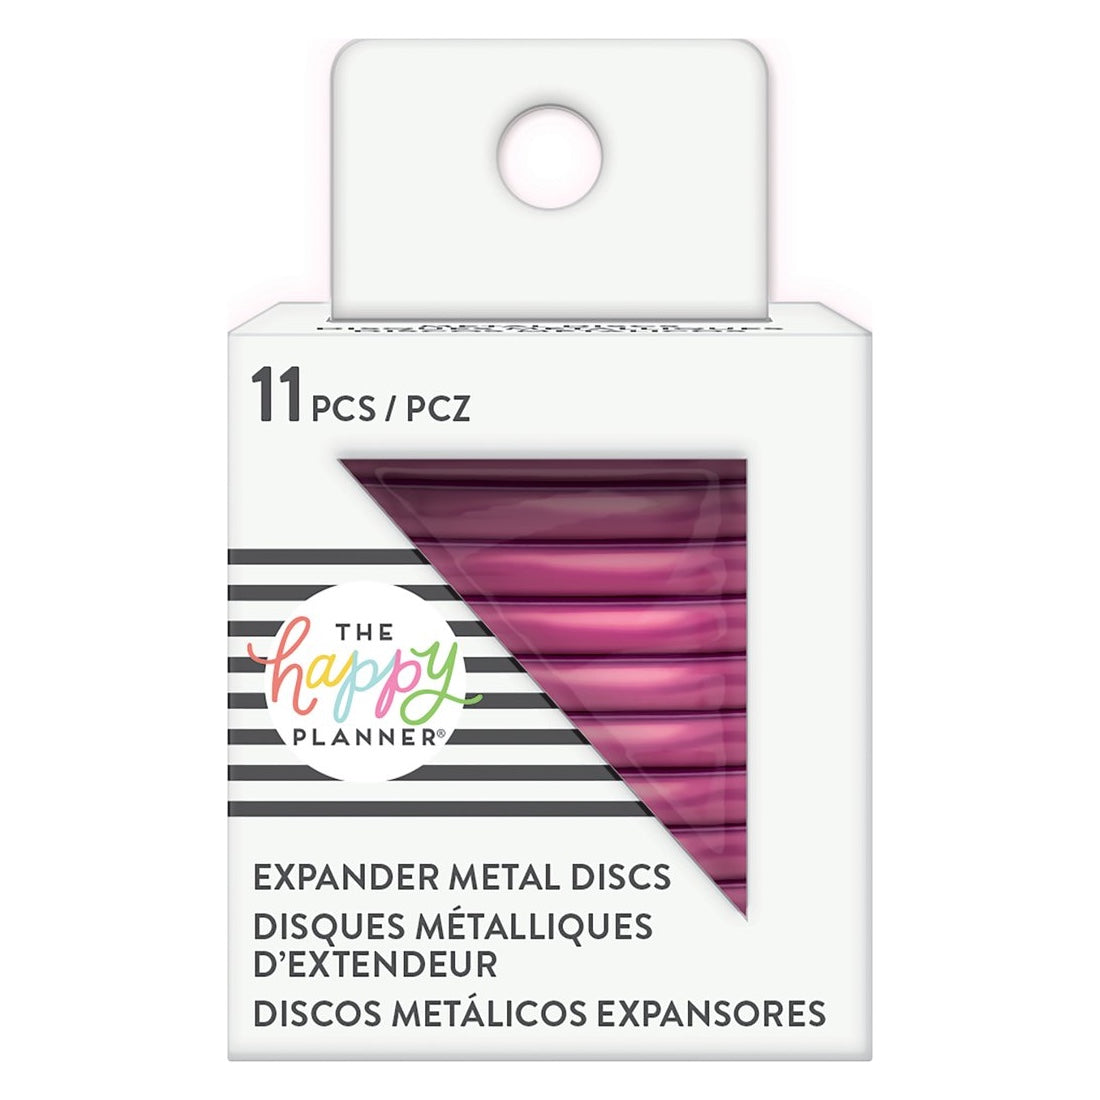 HAPPY PLANNER EXPANDER METAL DISCS : HOT PINK